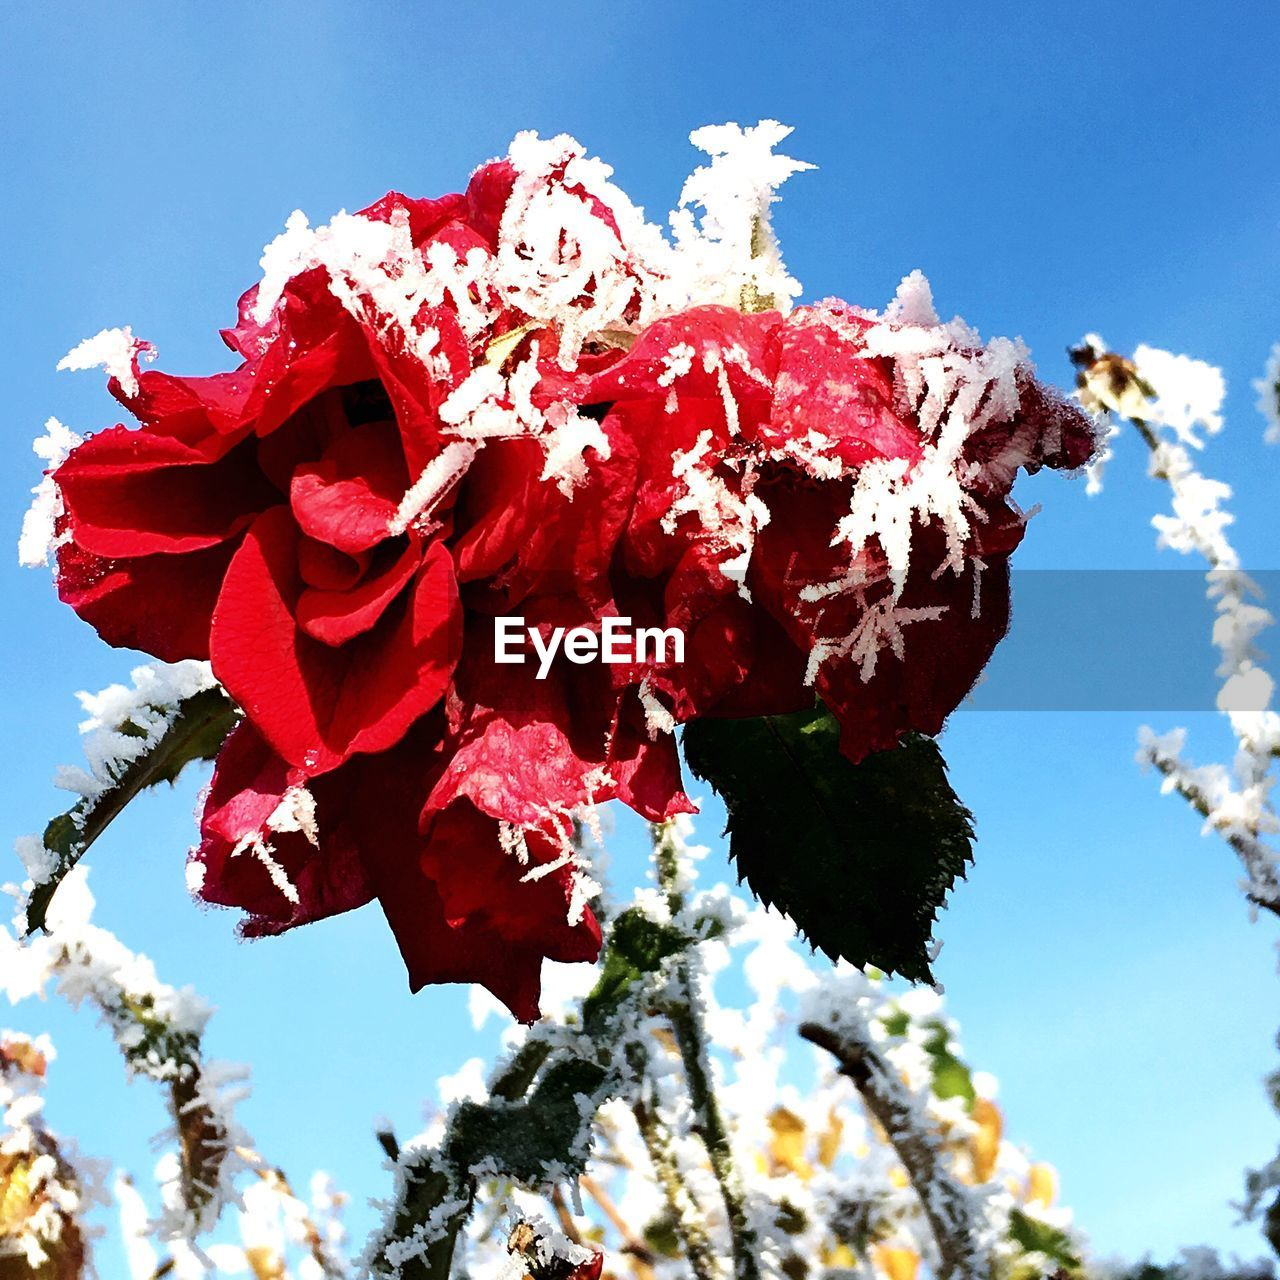 flower, growth, nature, fragility, beauty in nature, low angle view, day, petal, red, no people, tree, outdoors, sky, close-up, sunlight, blossom, freshness, plant, flower head, springtime, blooming, branch, hibiscus